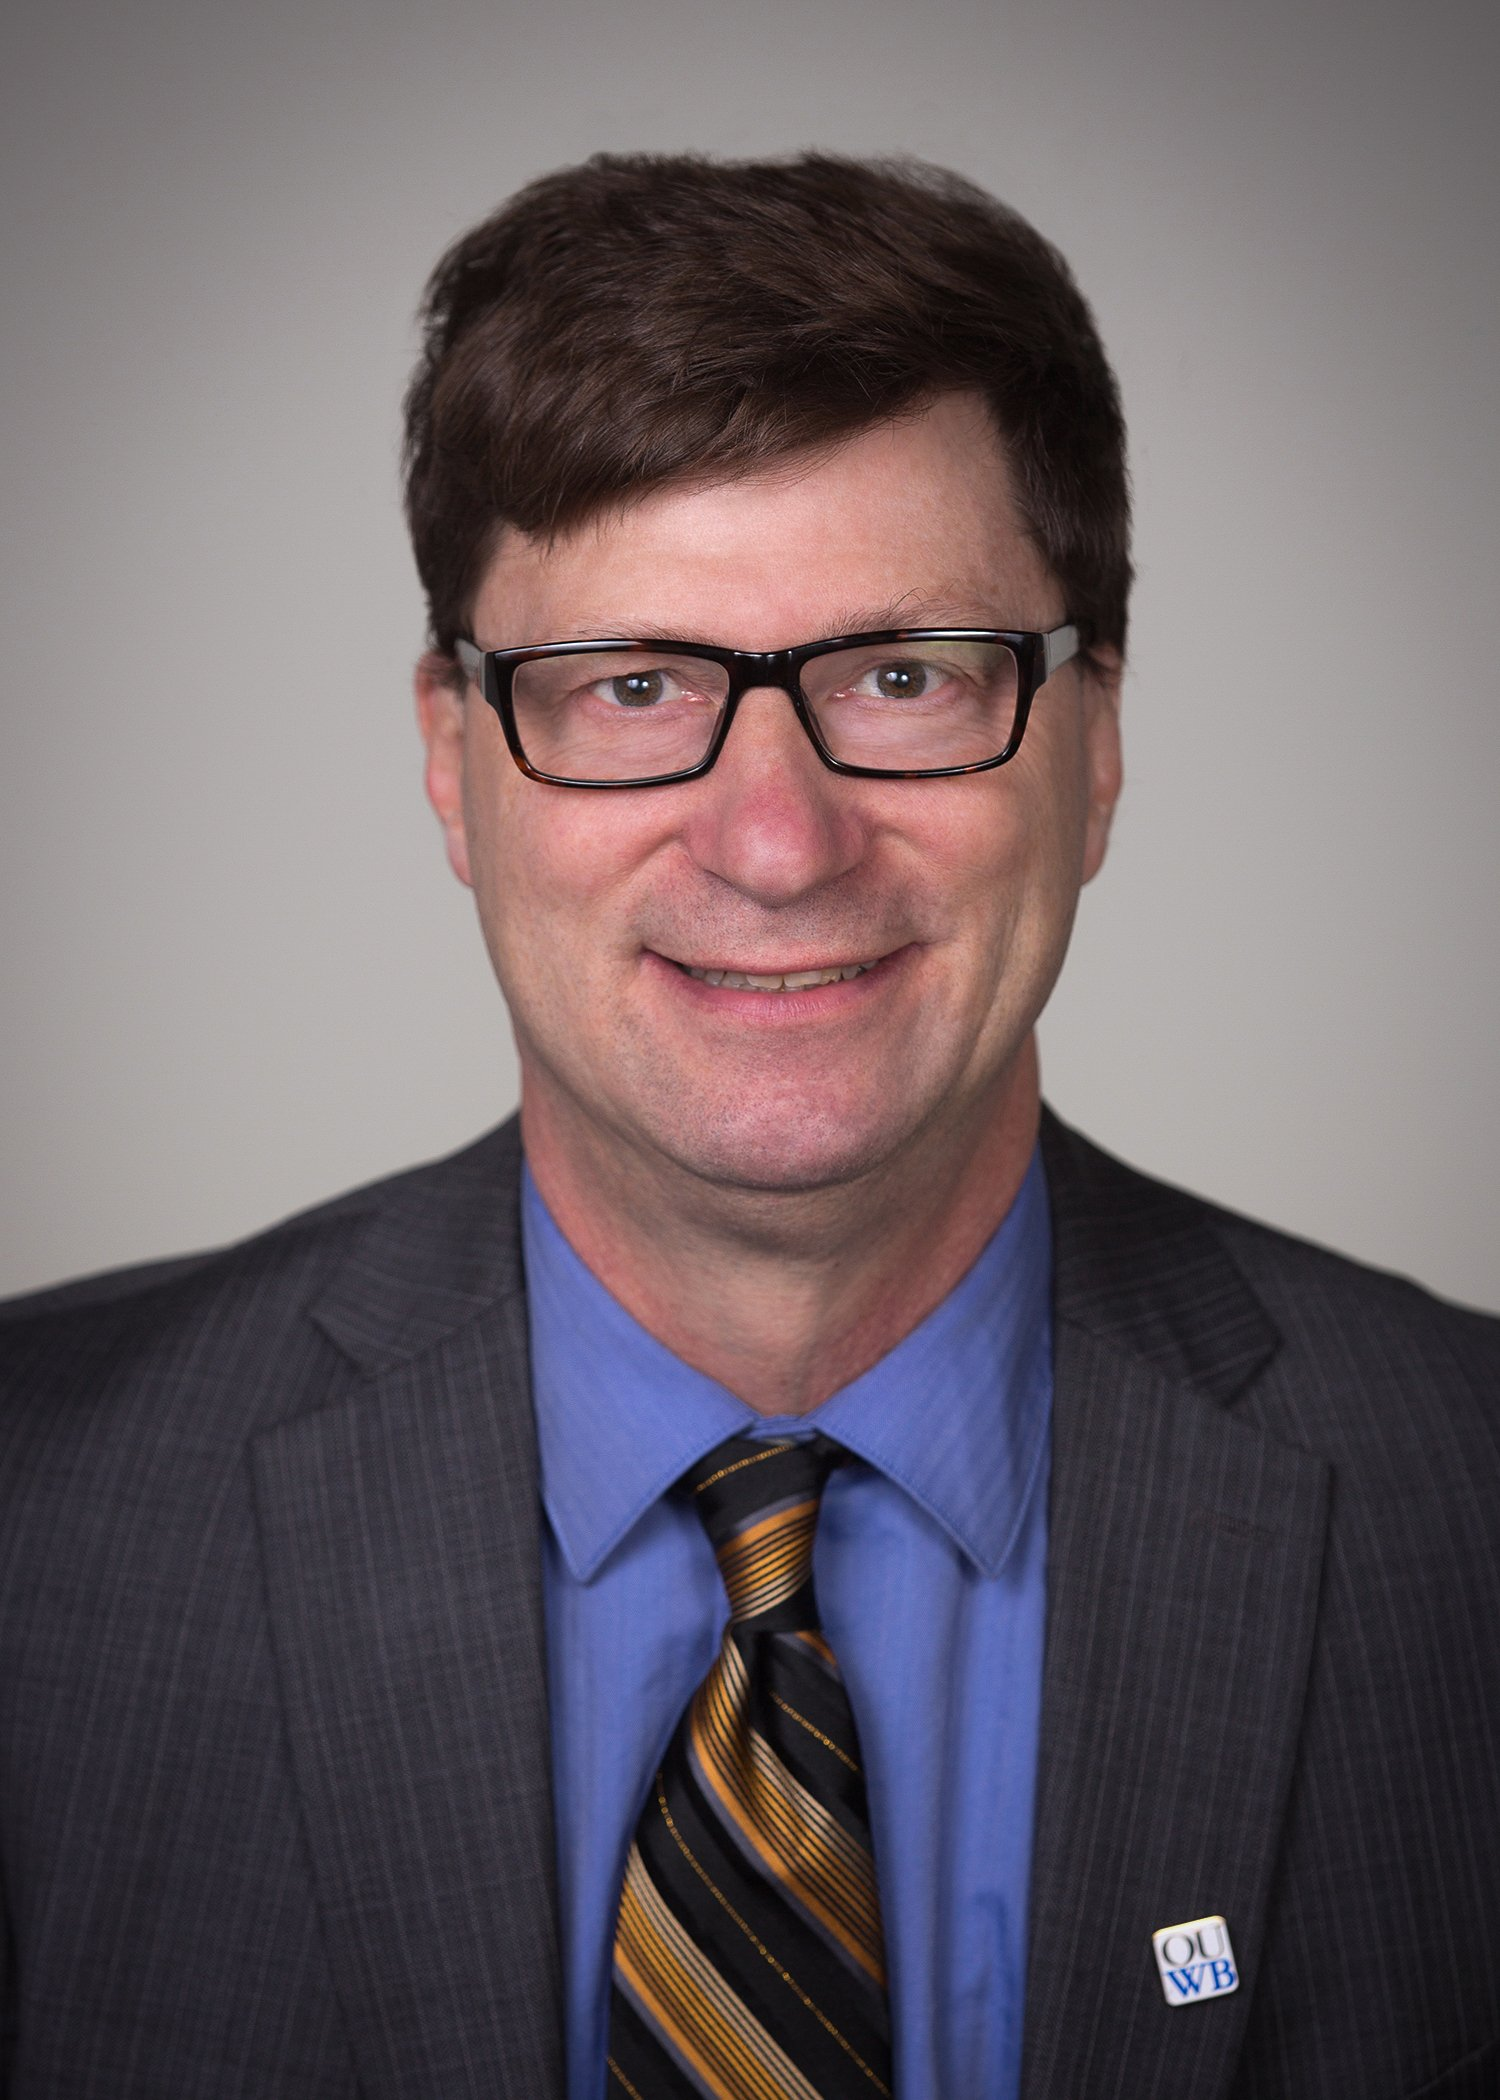 James F. Grogan